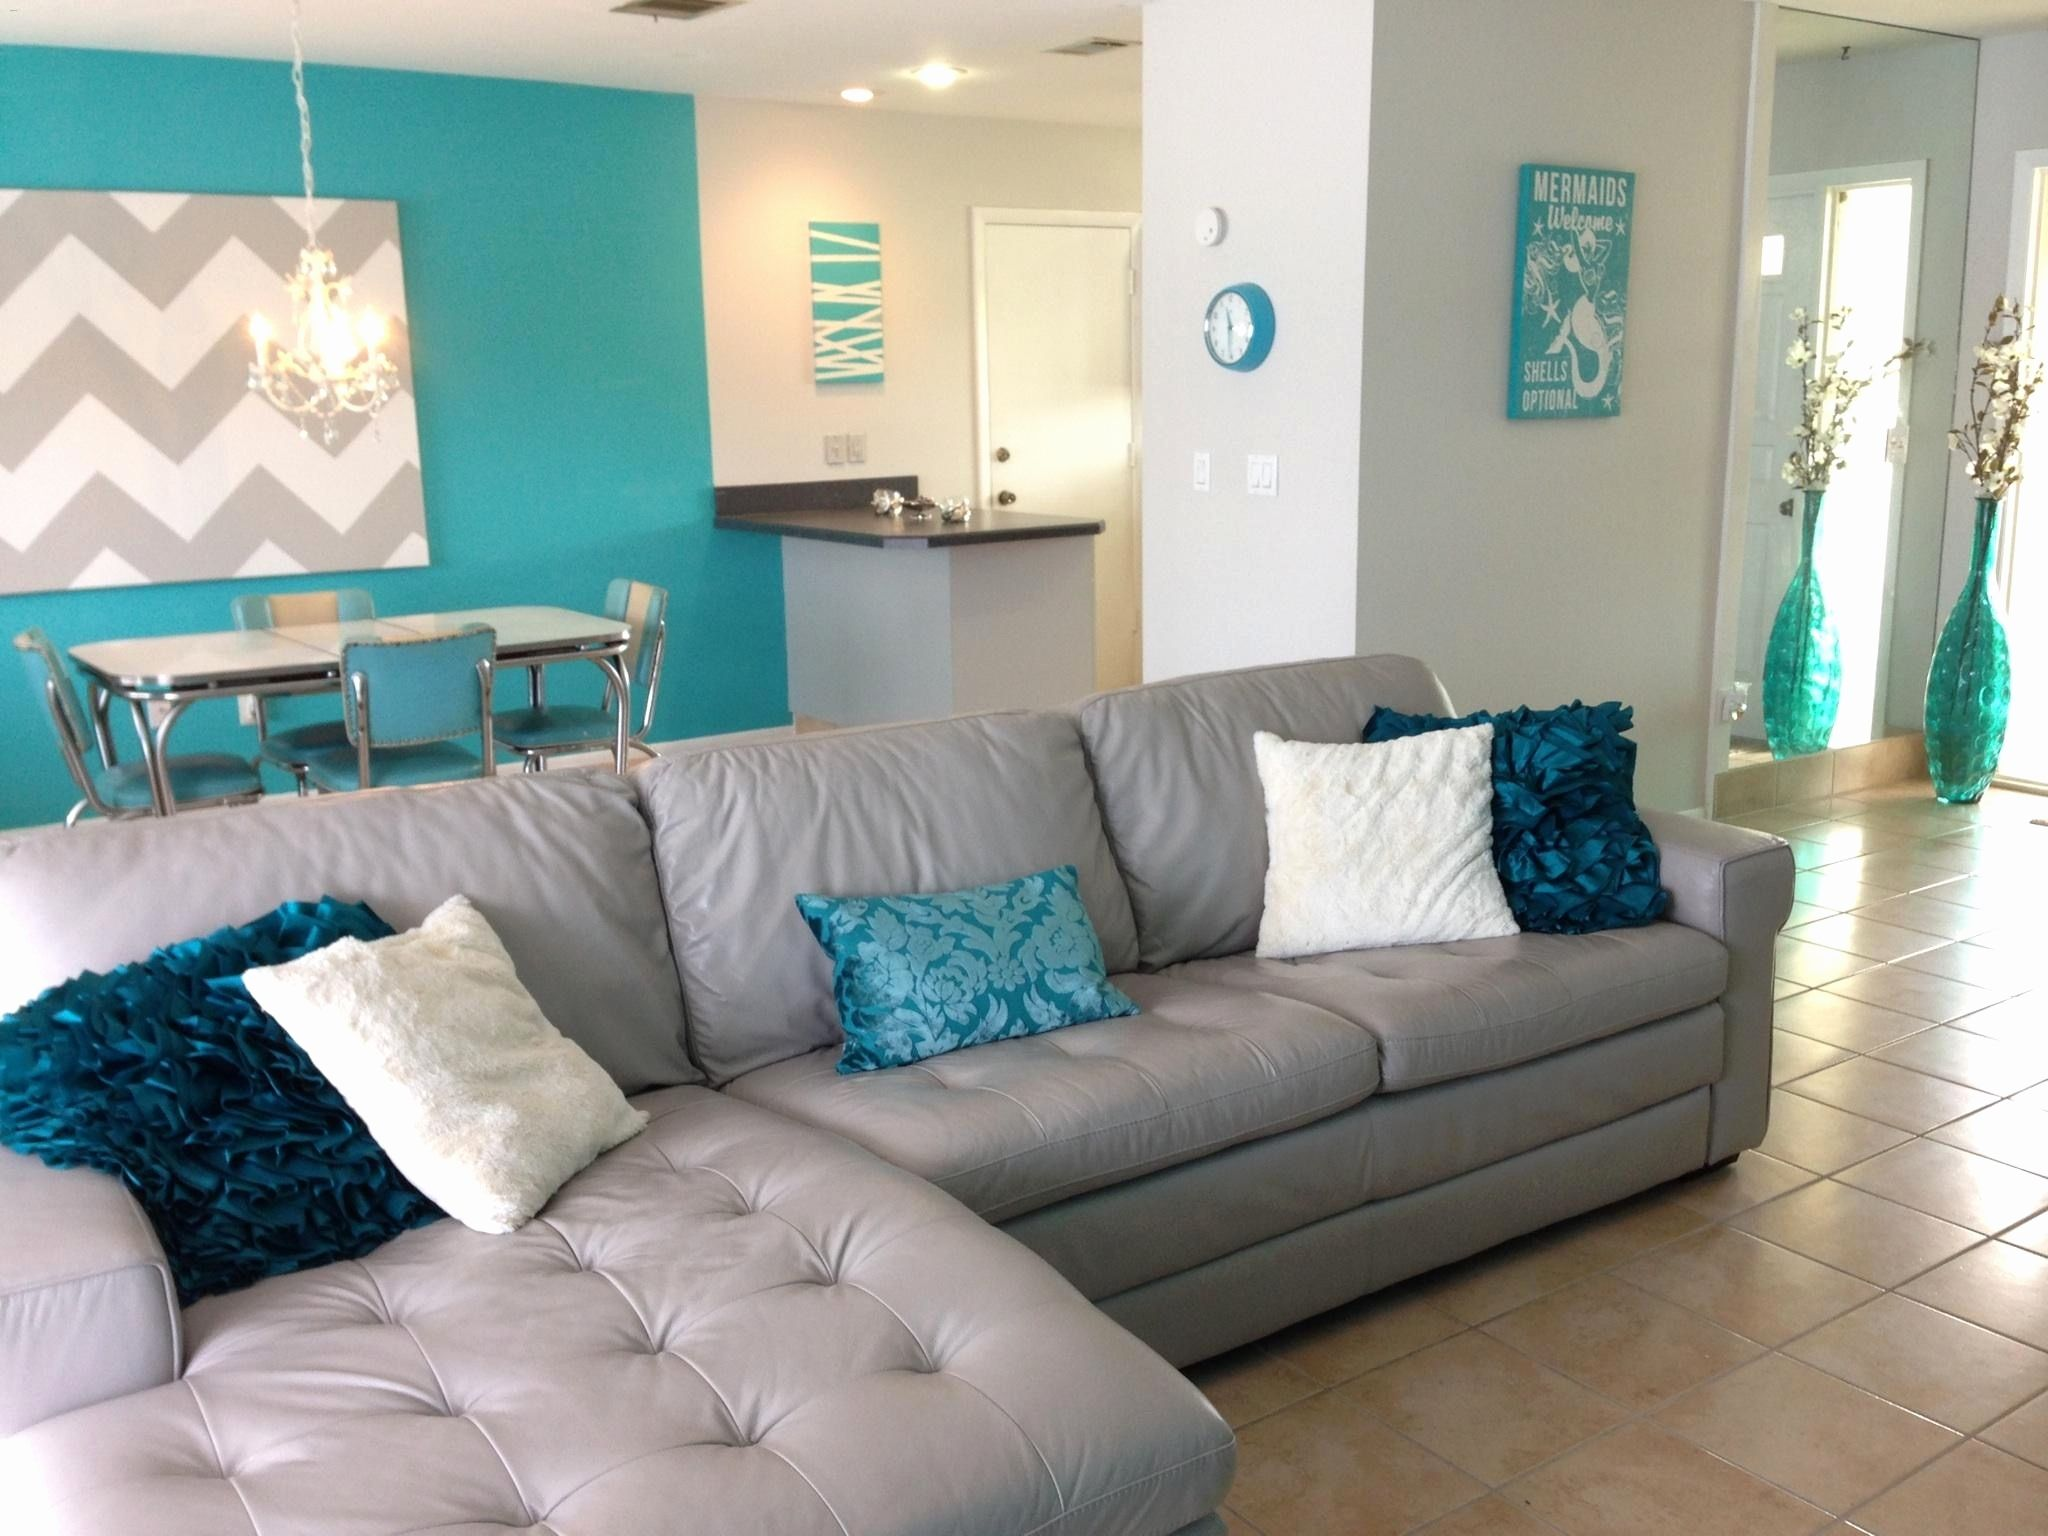 Image Result For Gray Purple And Teal House Decor Living Room Turquoise Teal Living Rooms Living Room Grey #purple #and #turquoise #living #room #ideas